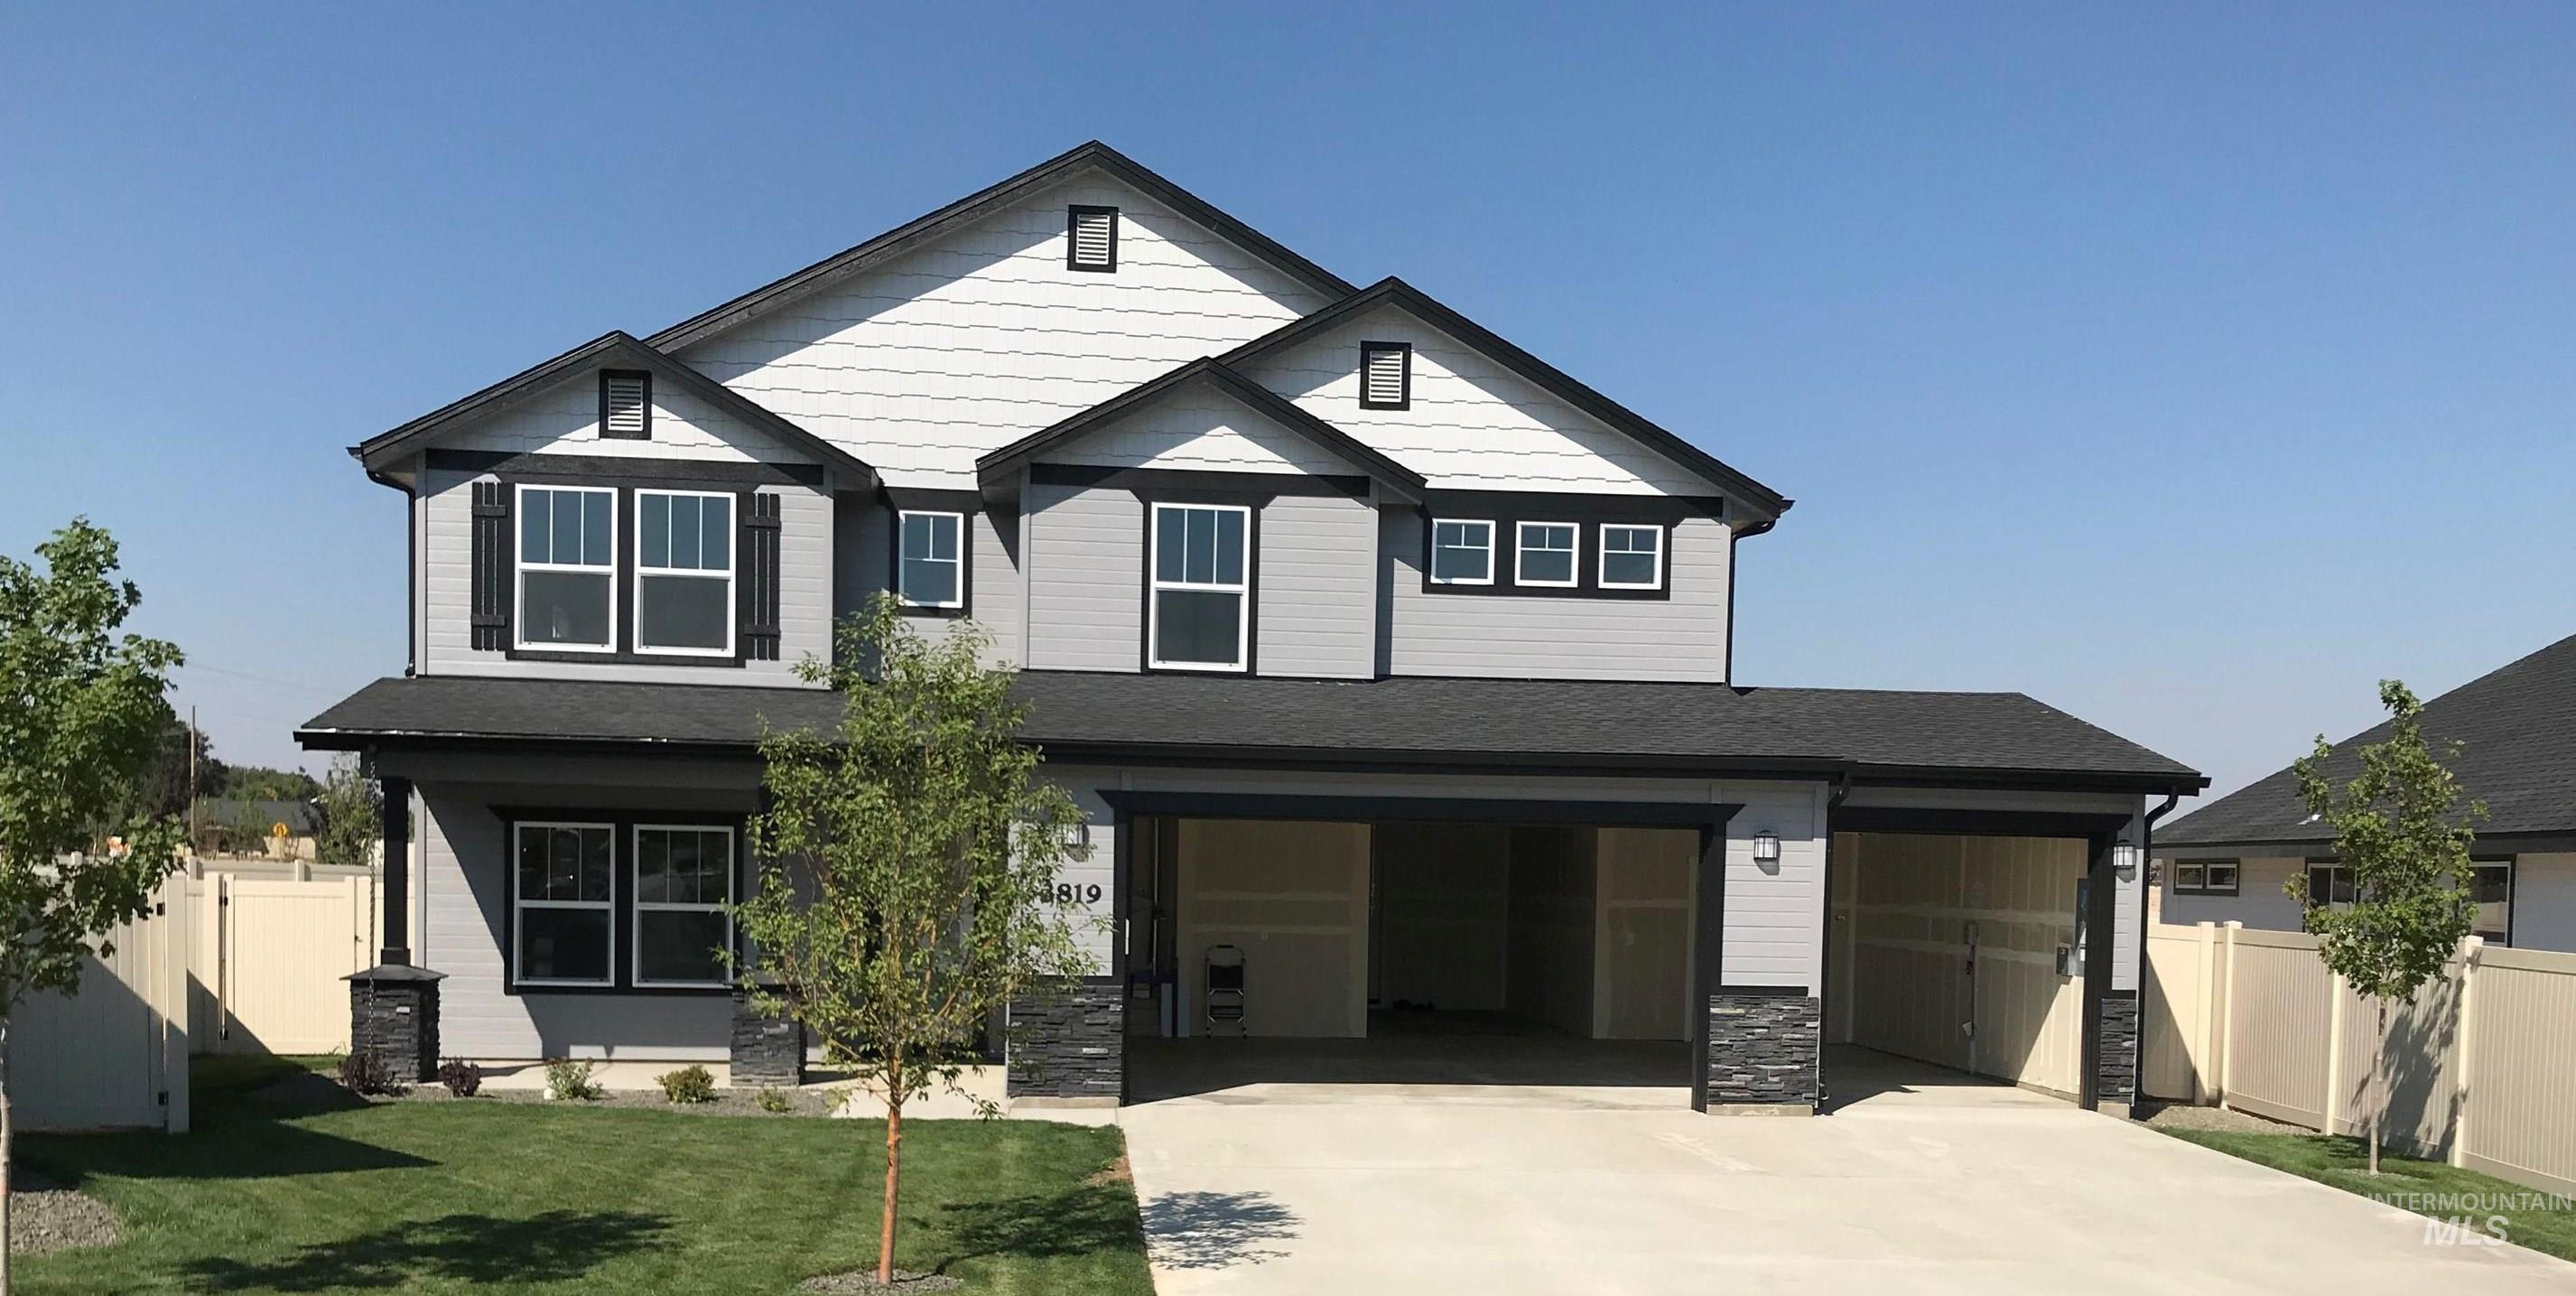 Pre-sold Garnet with Heritage Elevation. Photo Similar. This home features quartz kitchen and bathroom counters, large covered back patio, 9' ceilings, separate tub and shower in master bath, double oven, wood wrapped windows, insulated garage, upgraded cabinets, gas range, and so much more.